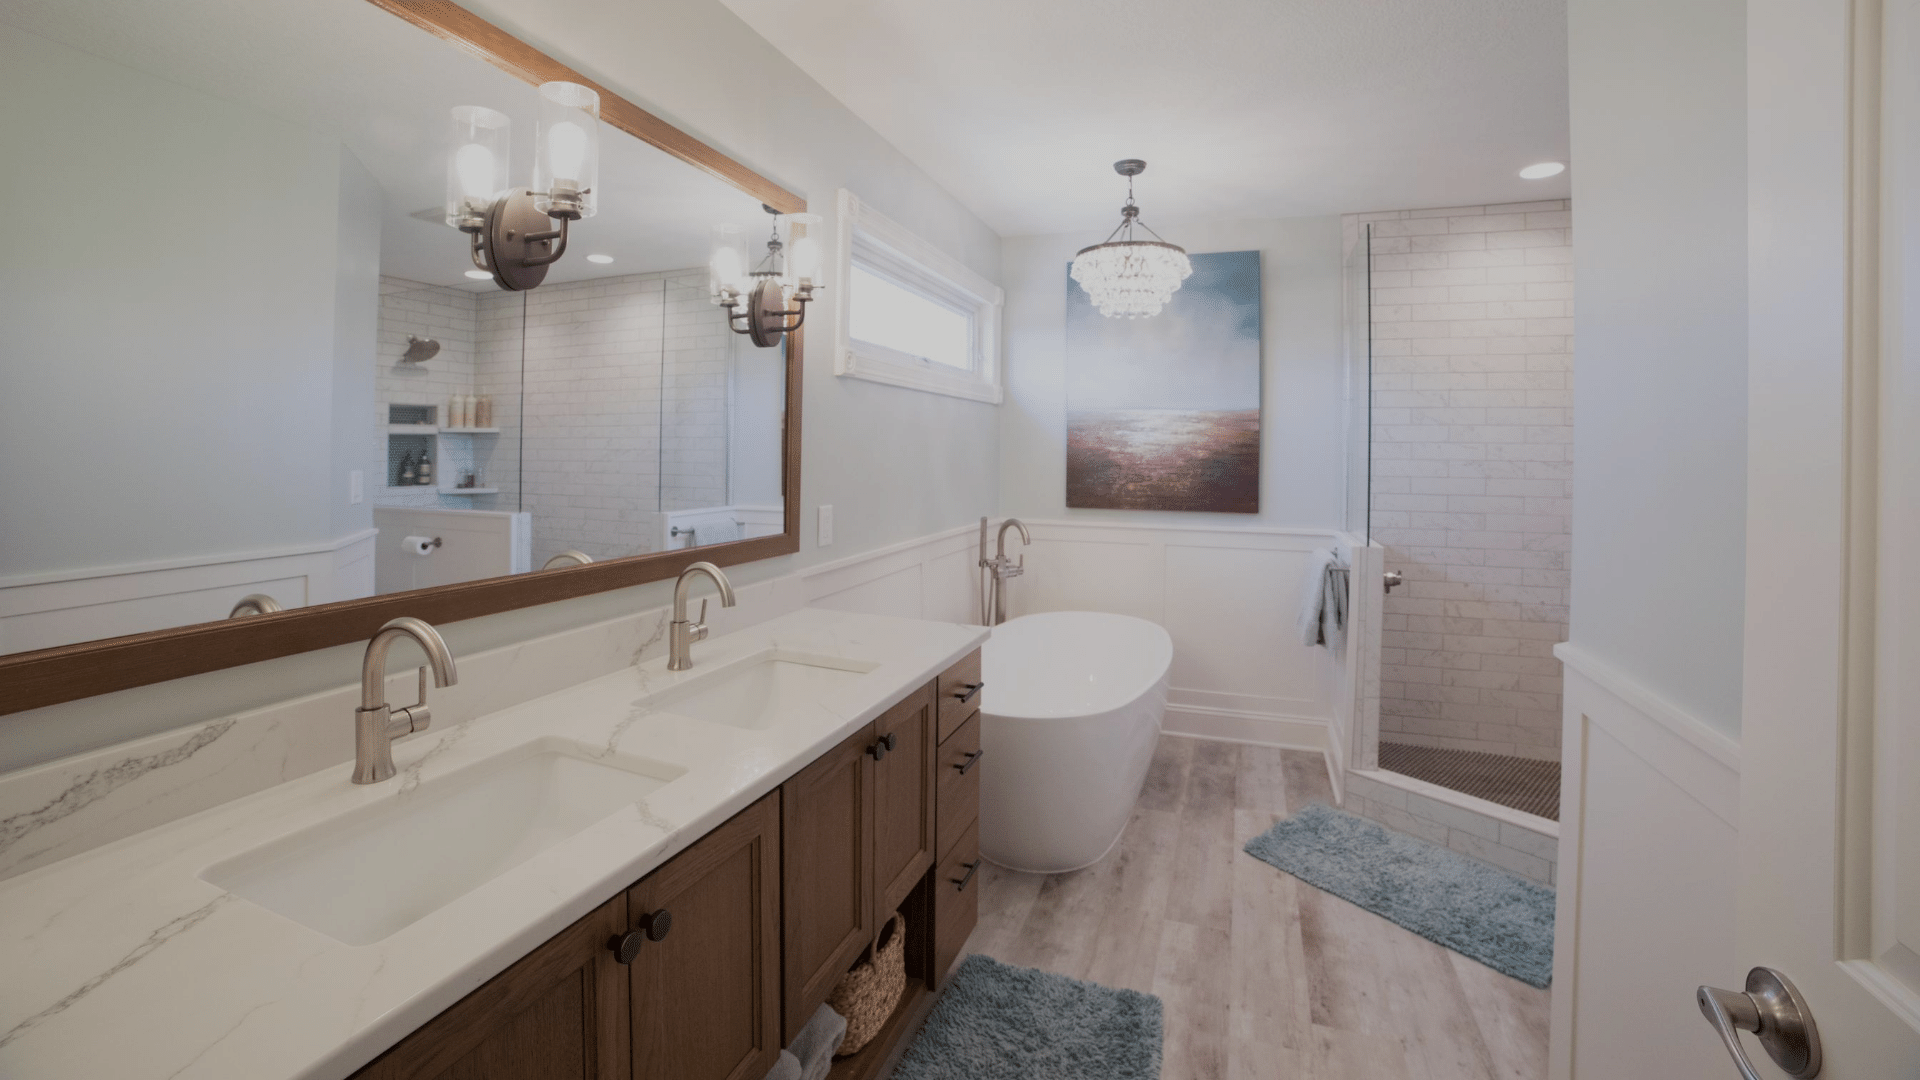 Bathroom Remodeling Services in Des Moines Iowa